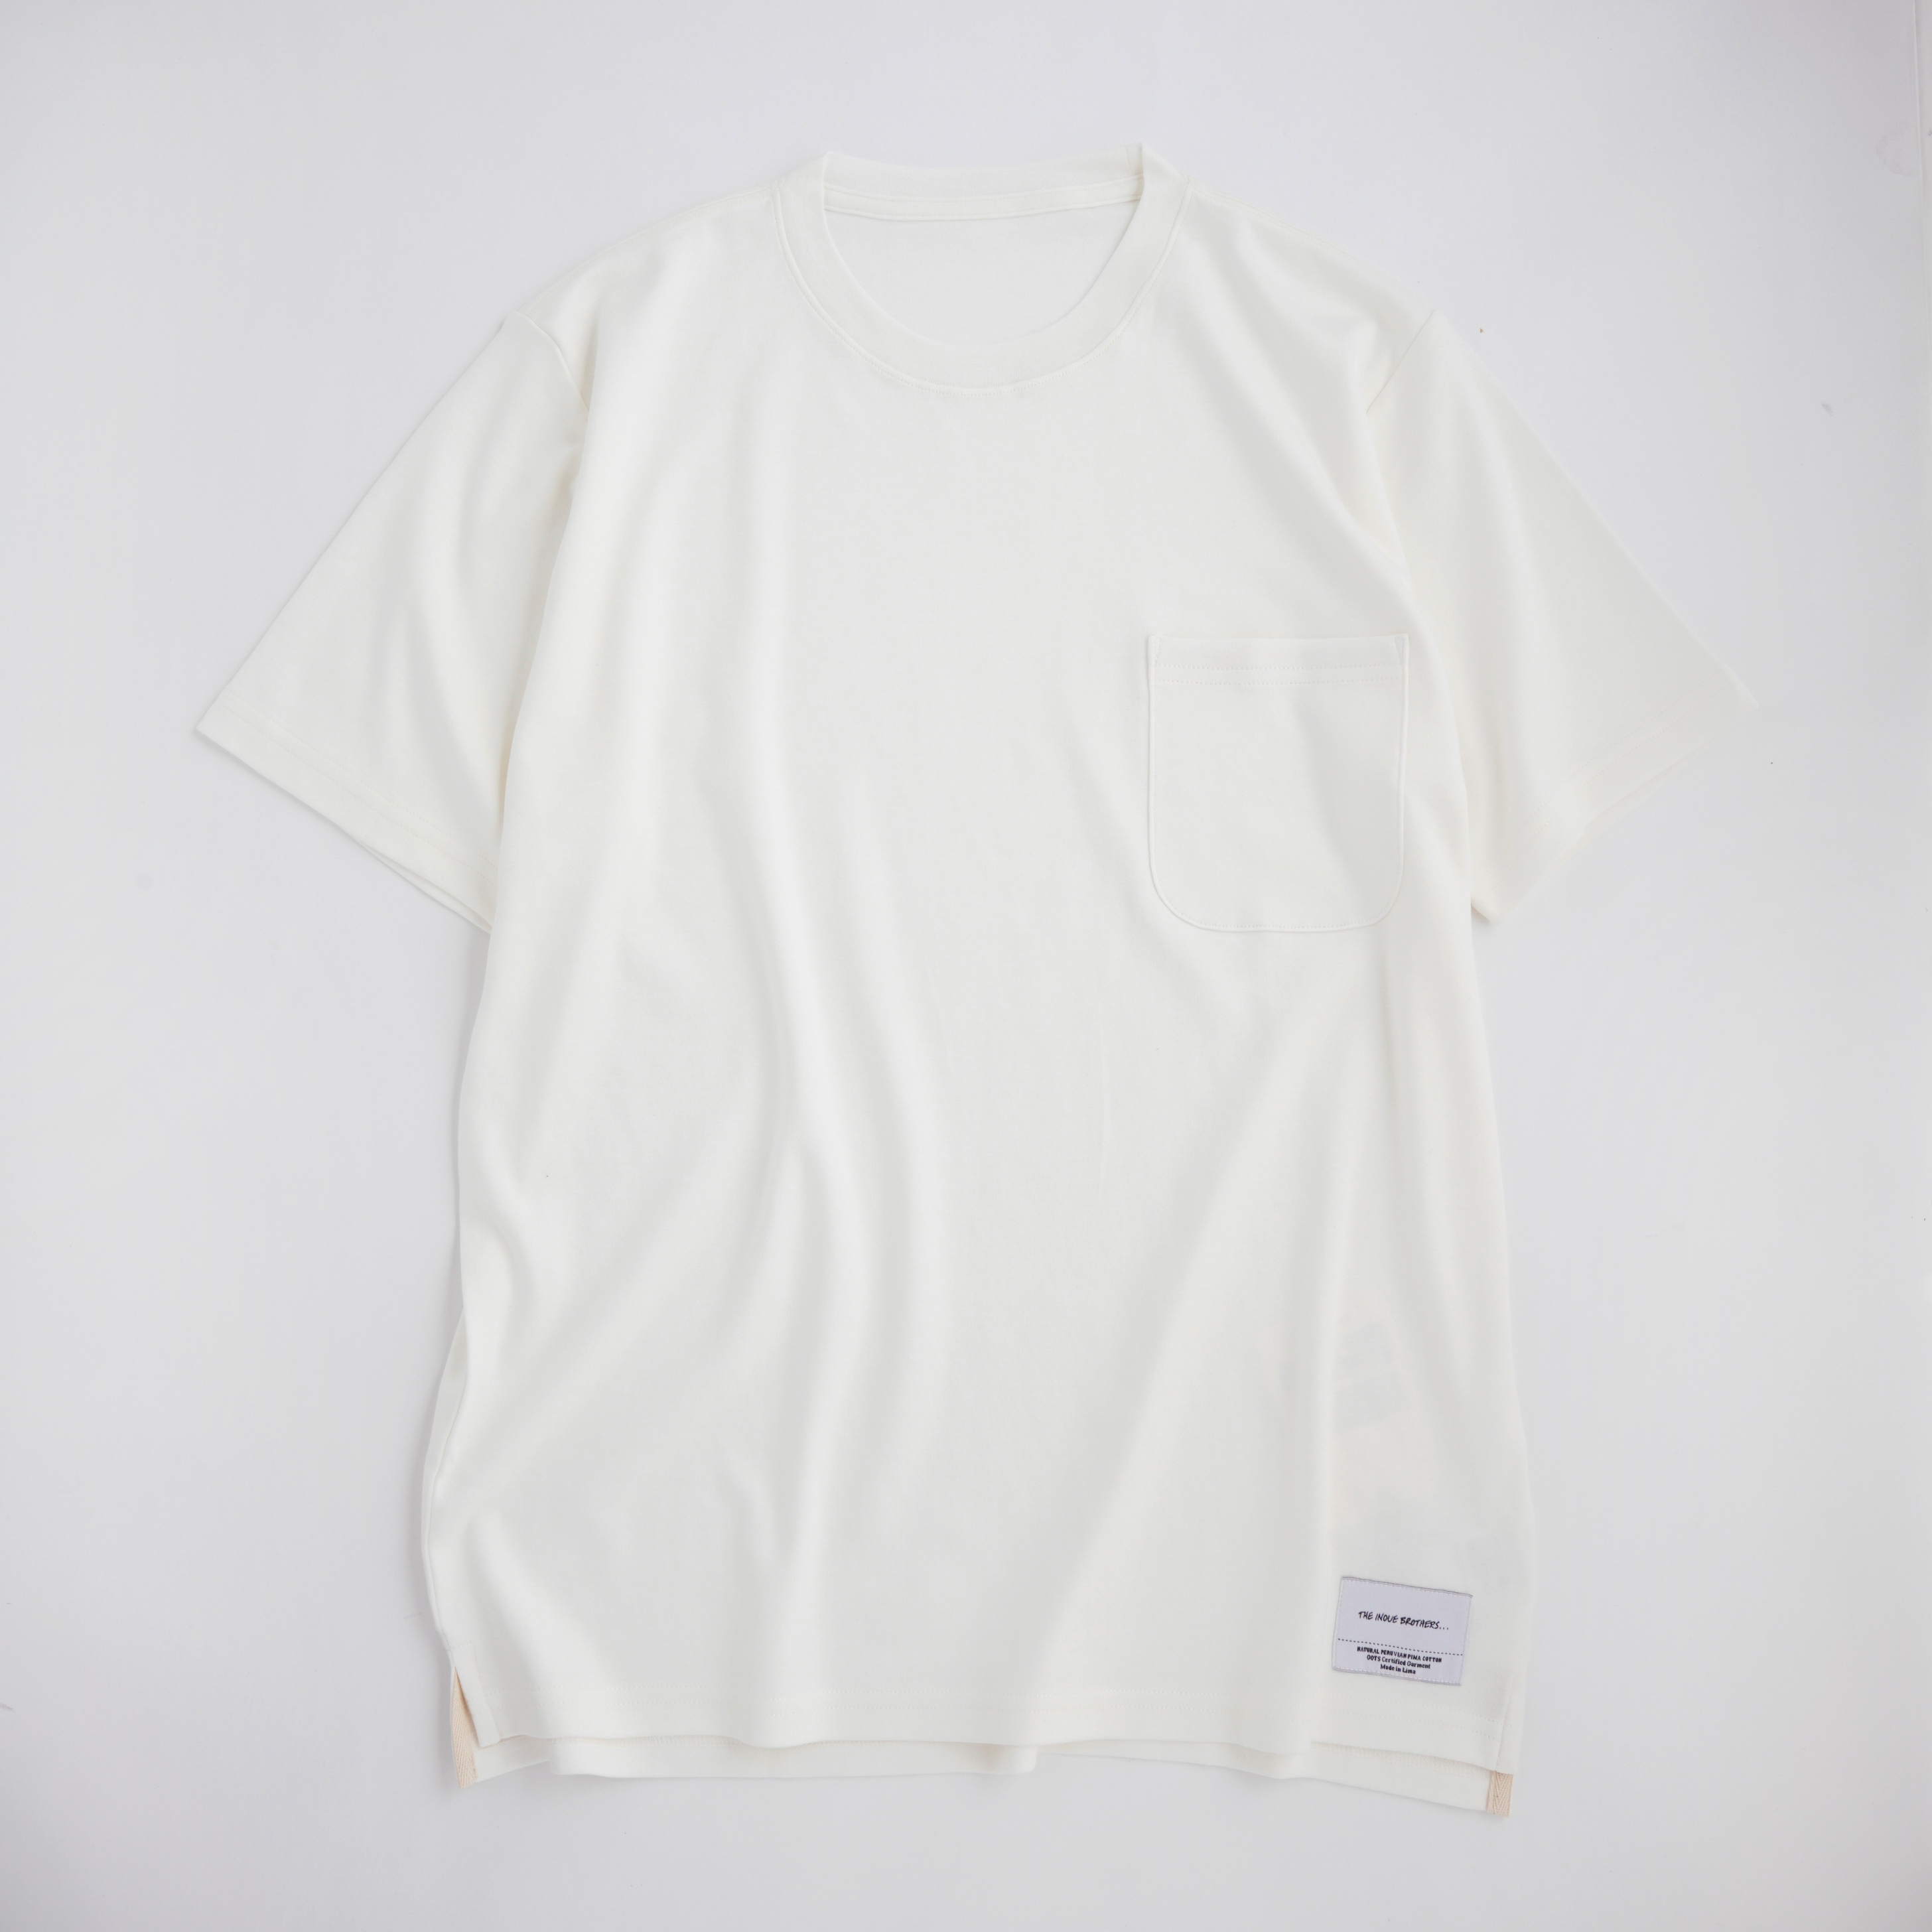 THE INOUE BROTHERS/Standard Pochet T-shirt/White